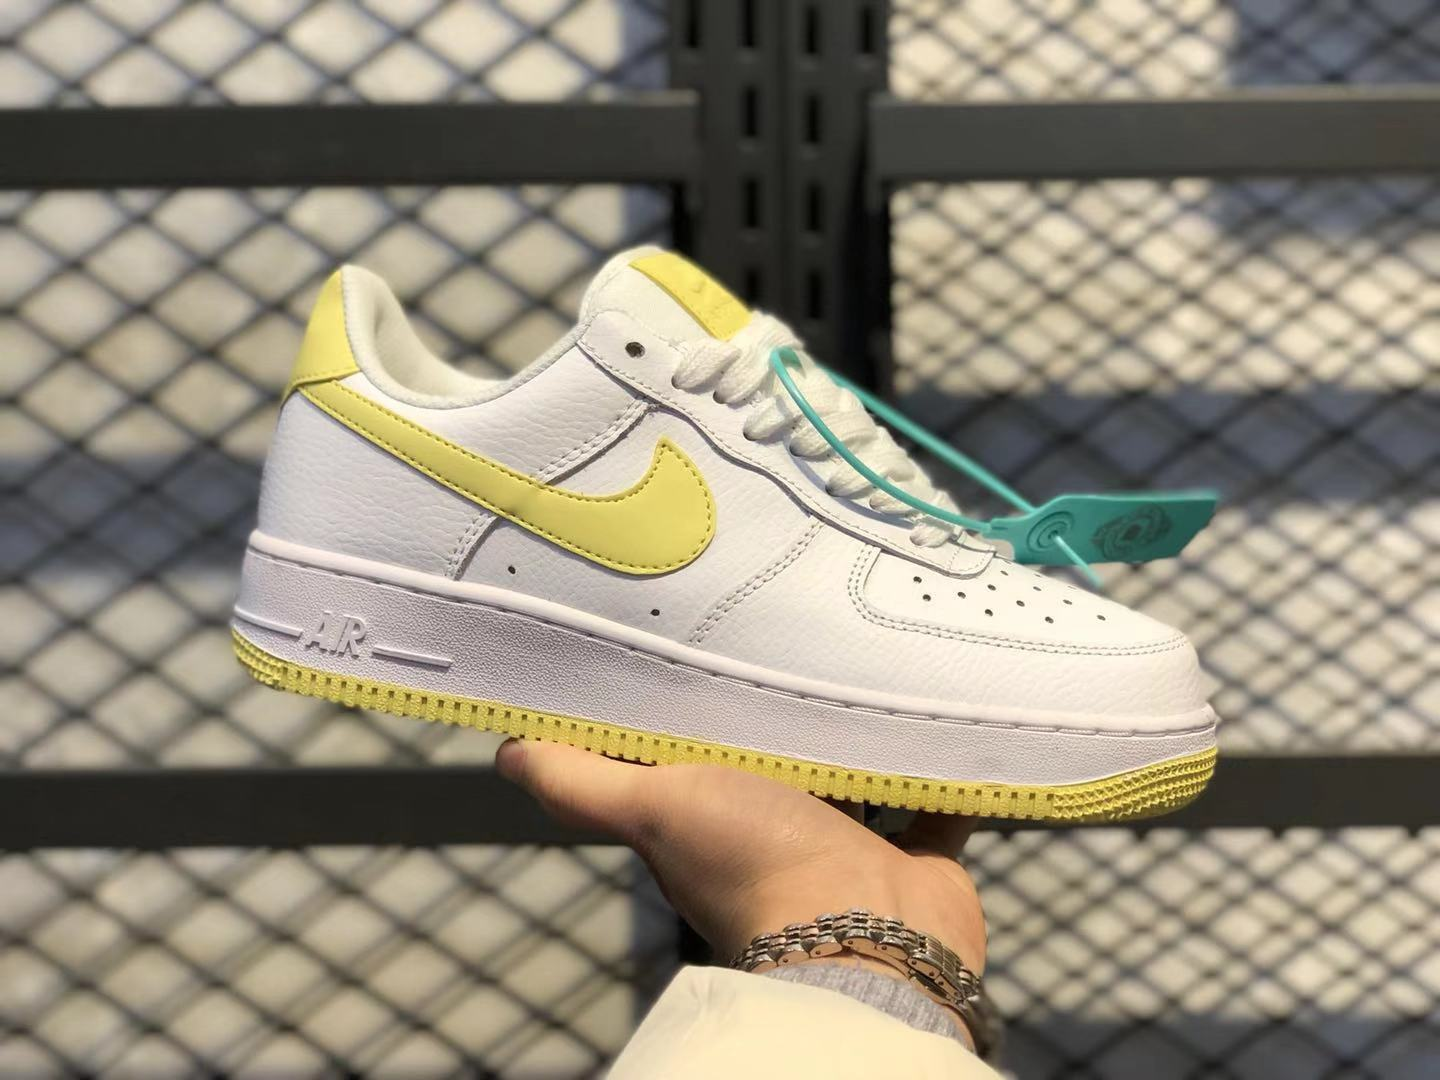 2020 Top Quality Nike Wmns Air Force 1 Low White/Bicycle Yellow AH0287-106